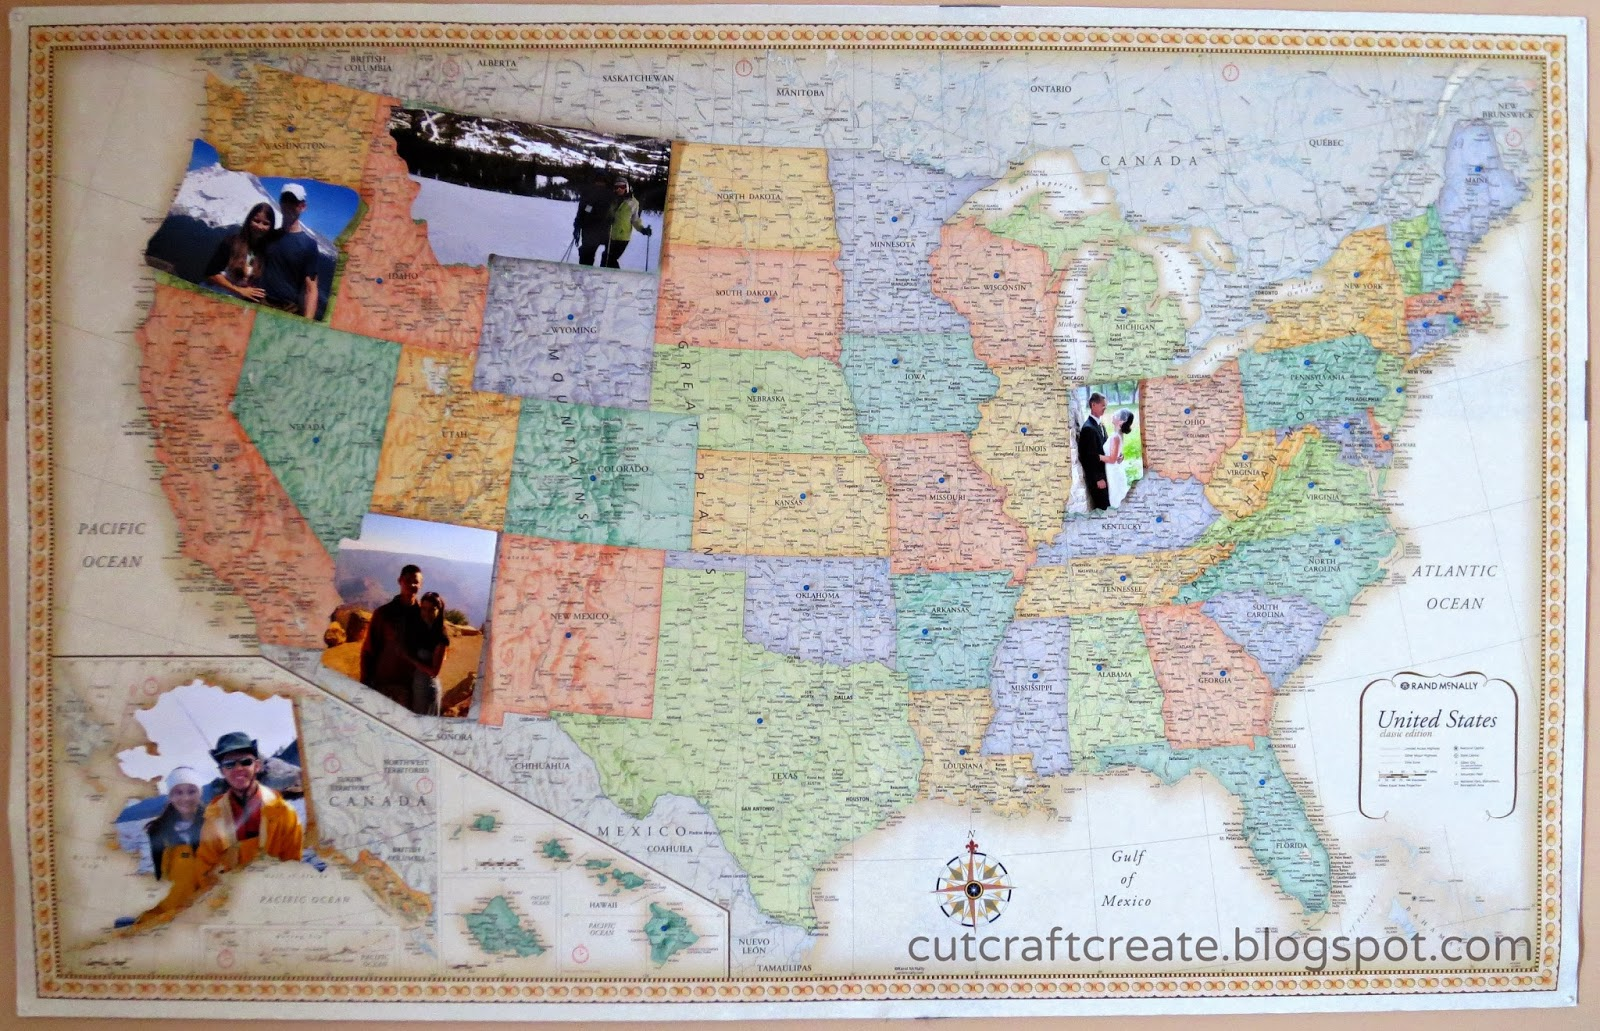 Cut Craft Create Personalized Photo Map for our Paper Anniversary – Us Travel Maps